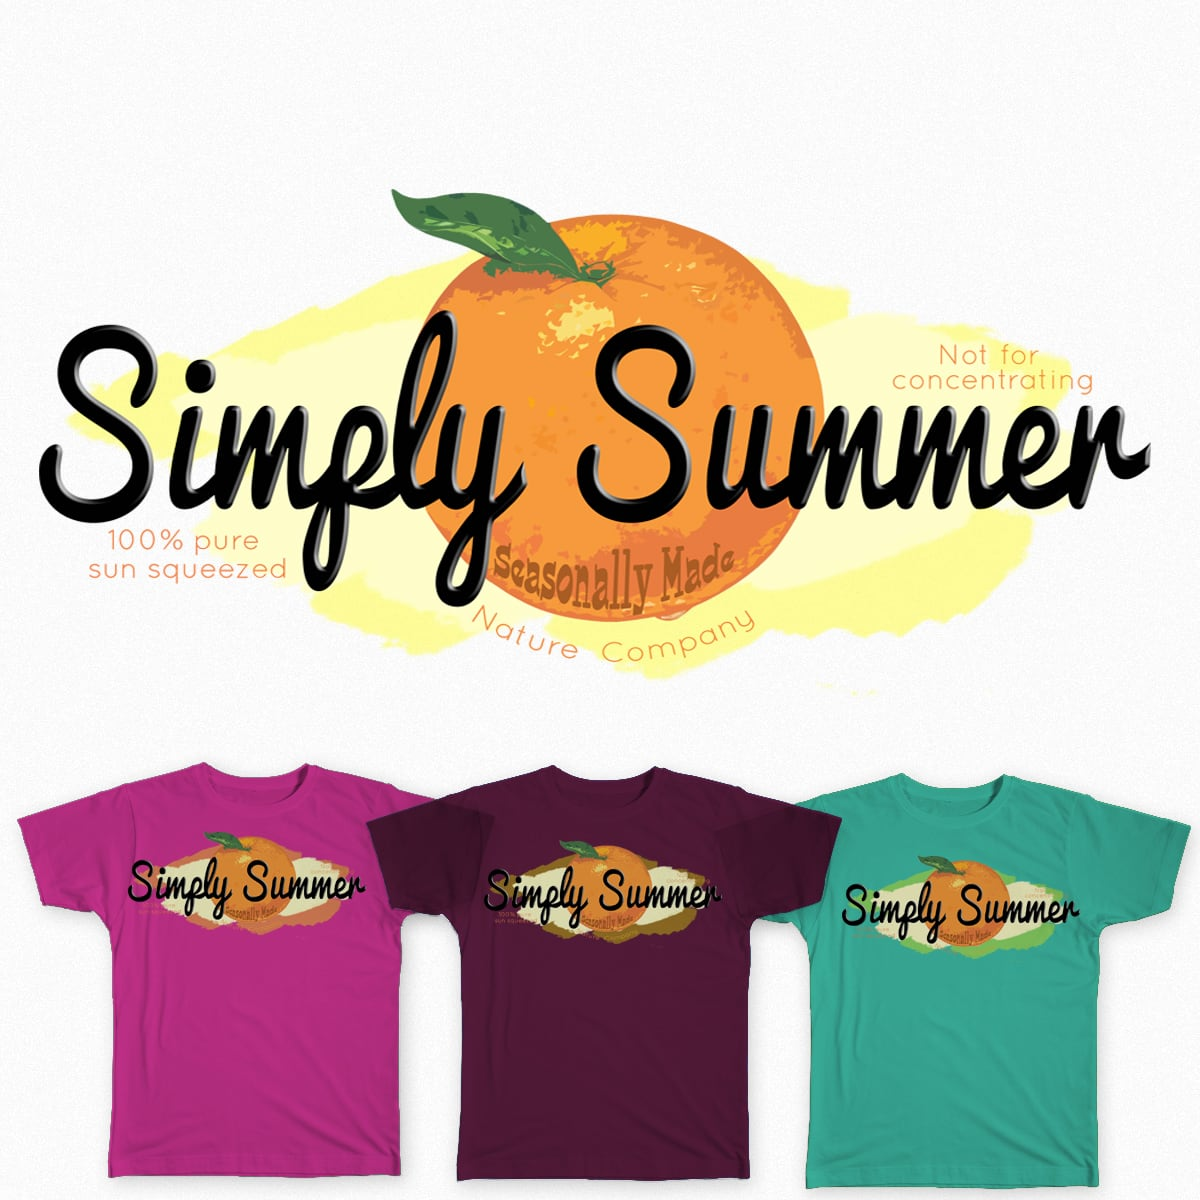 Simply Summer by caitlin.loe on Threadless